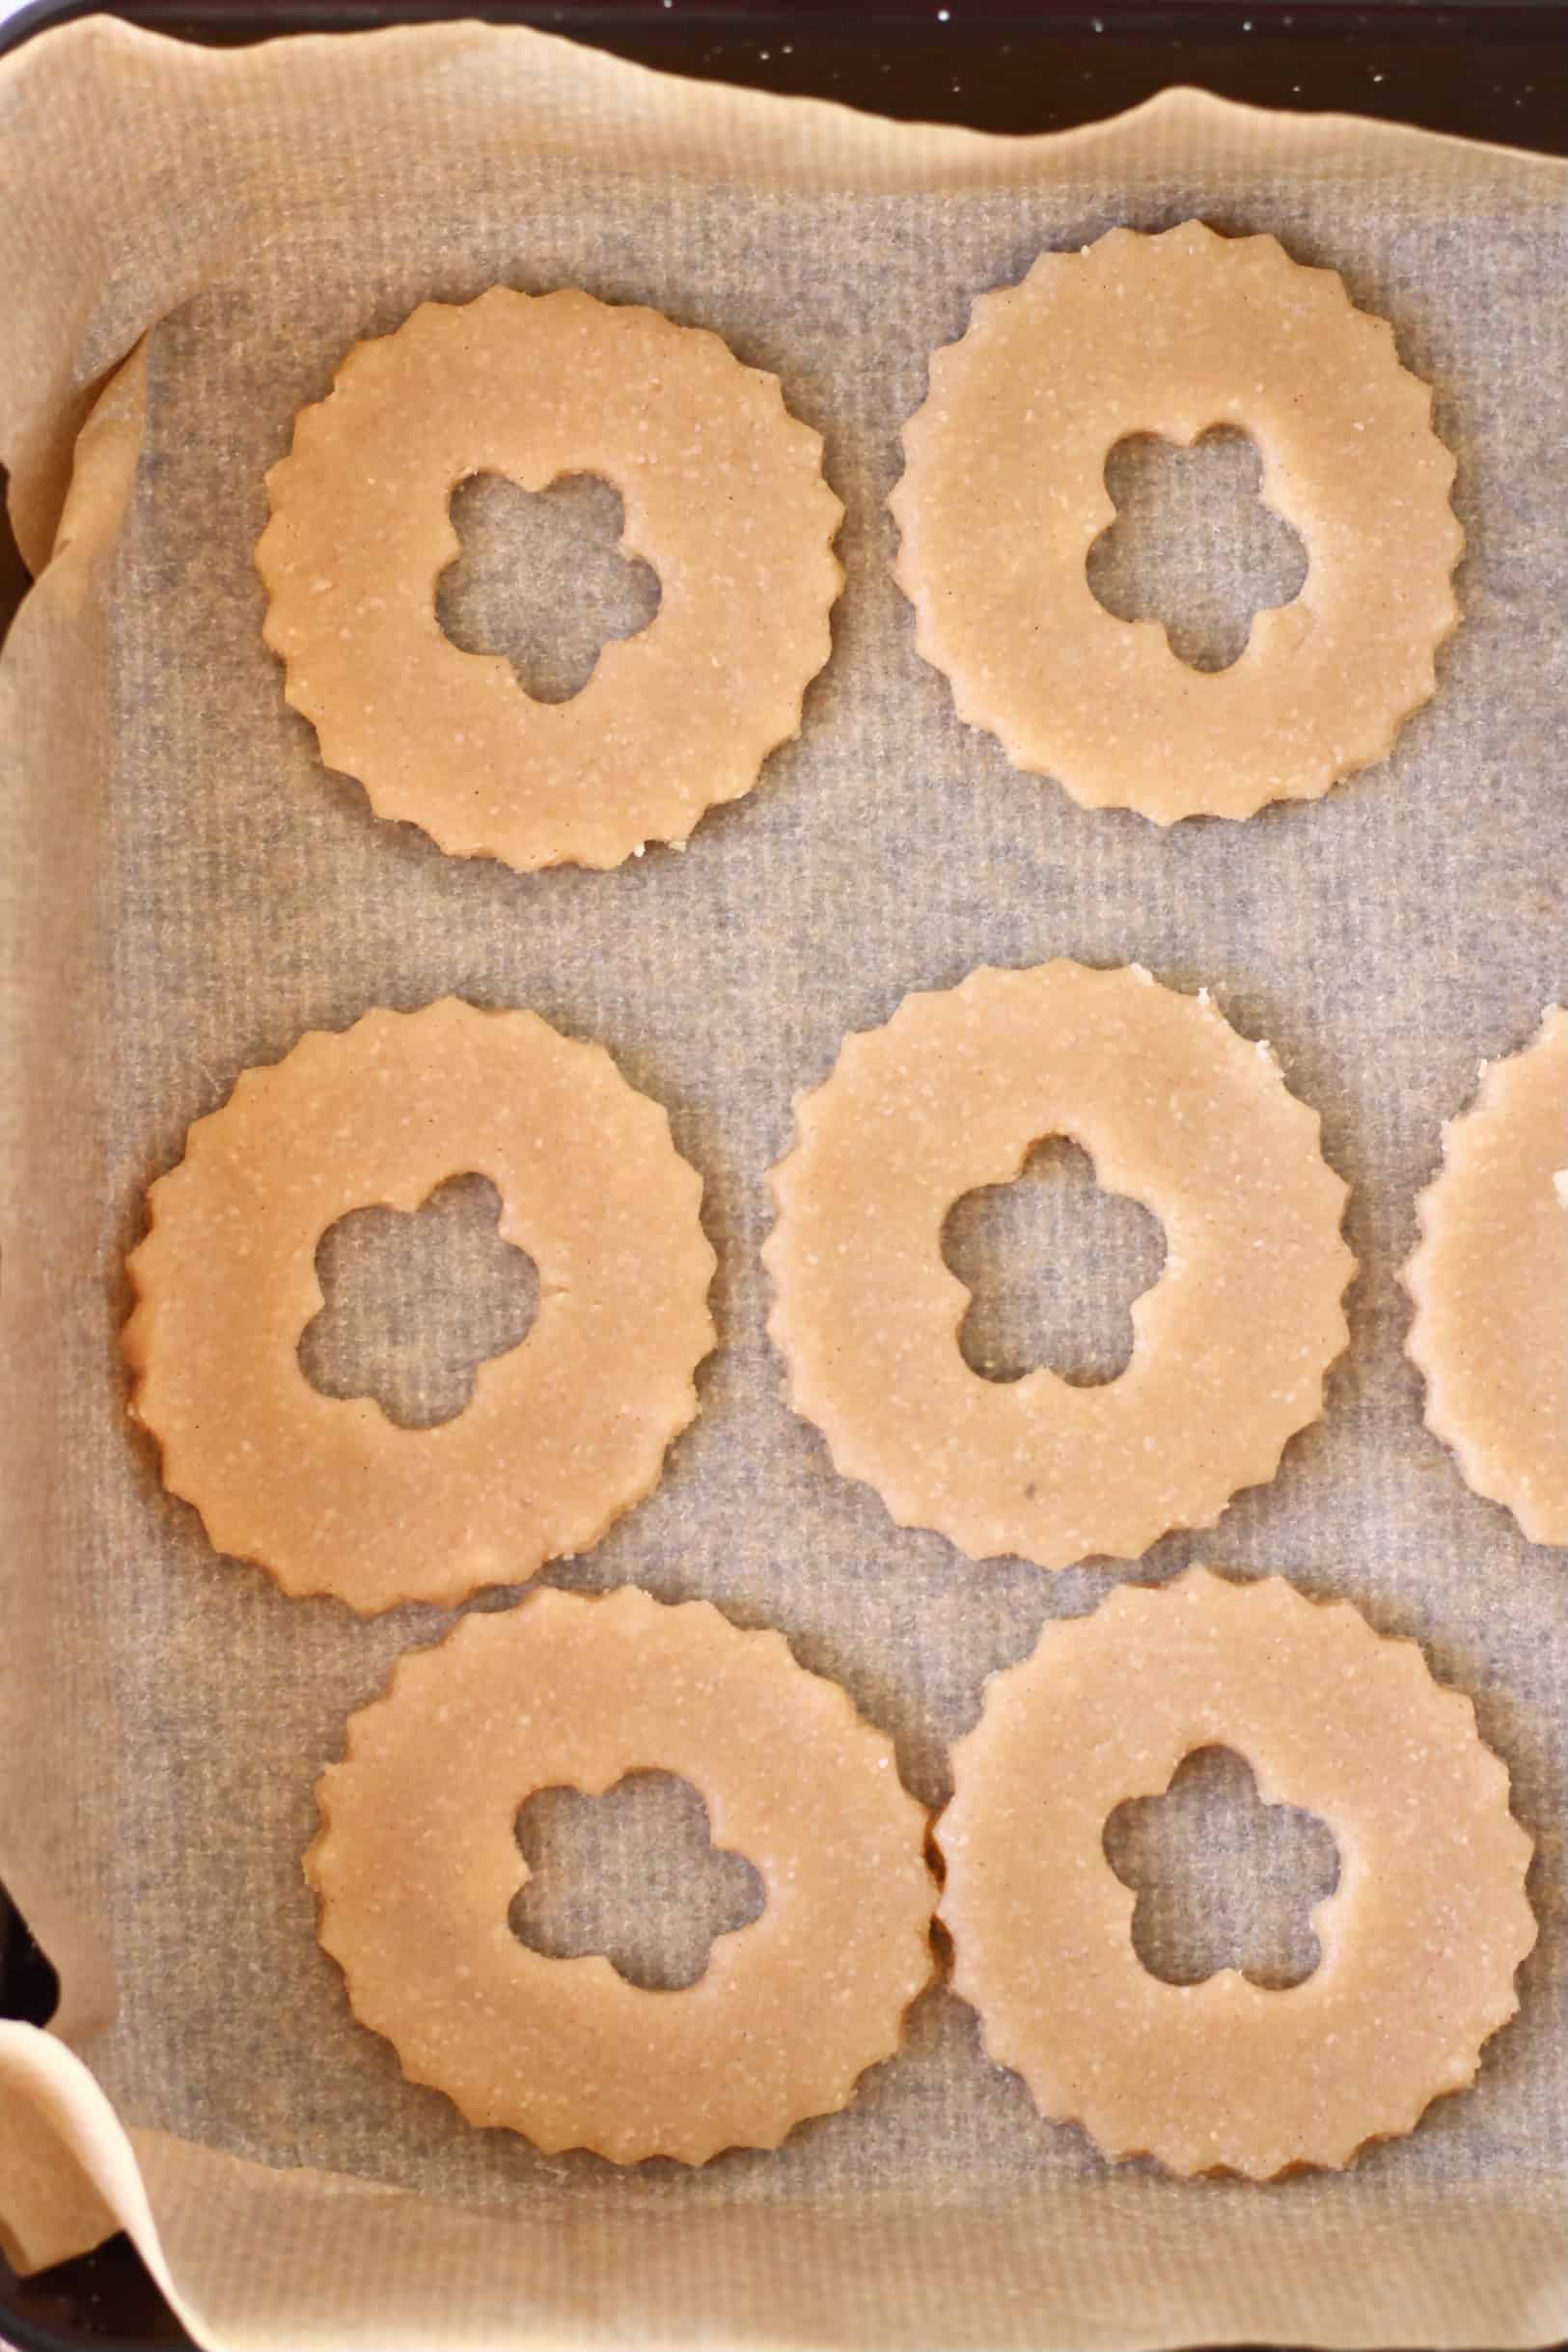 Six raw gluten-free vegan linzer cookie circles with flower-shaped windows on a baking tray lined with baking paper